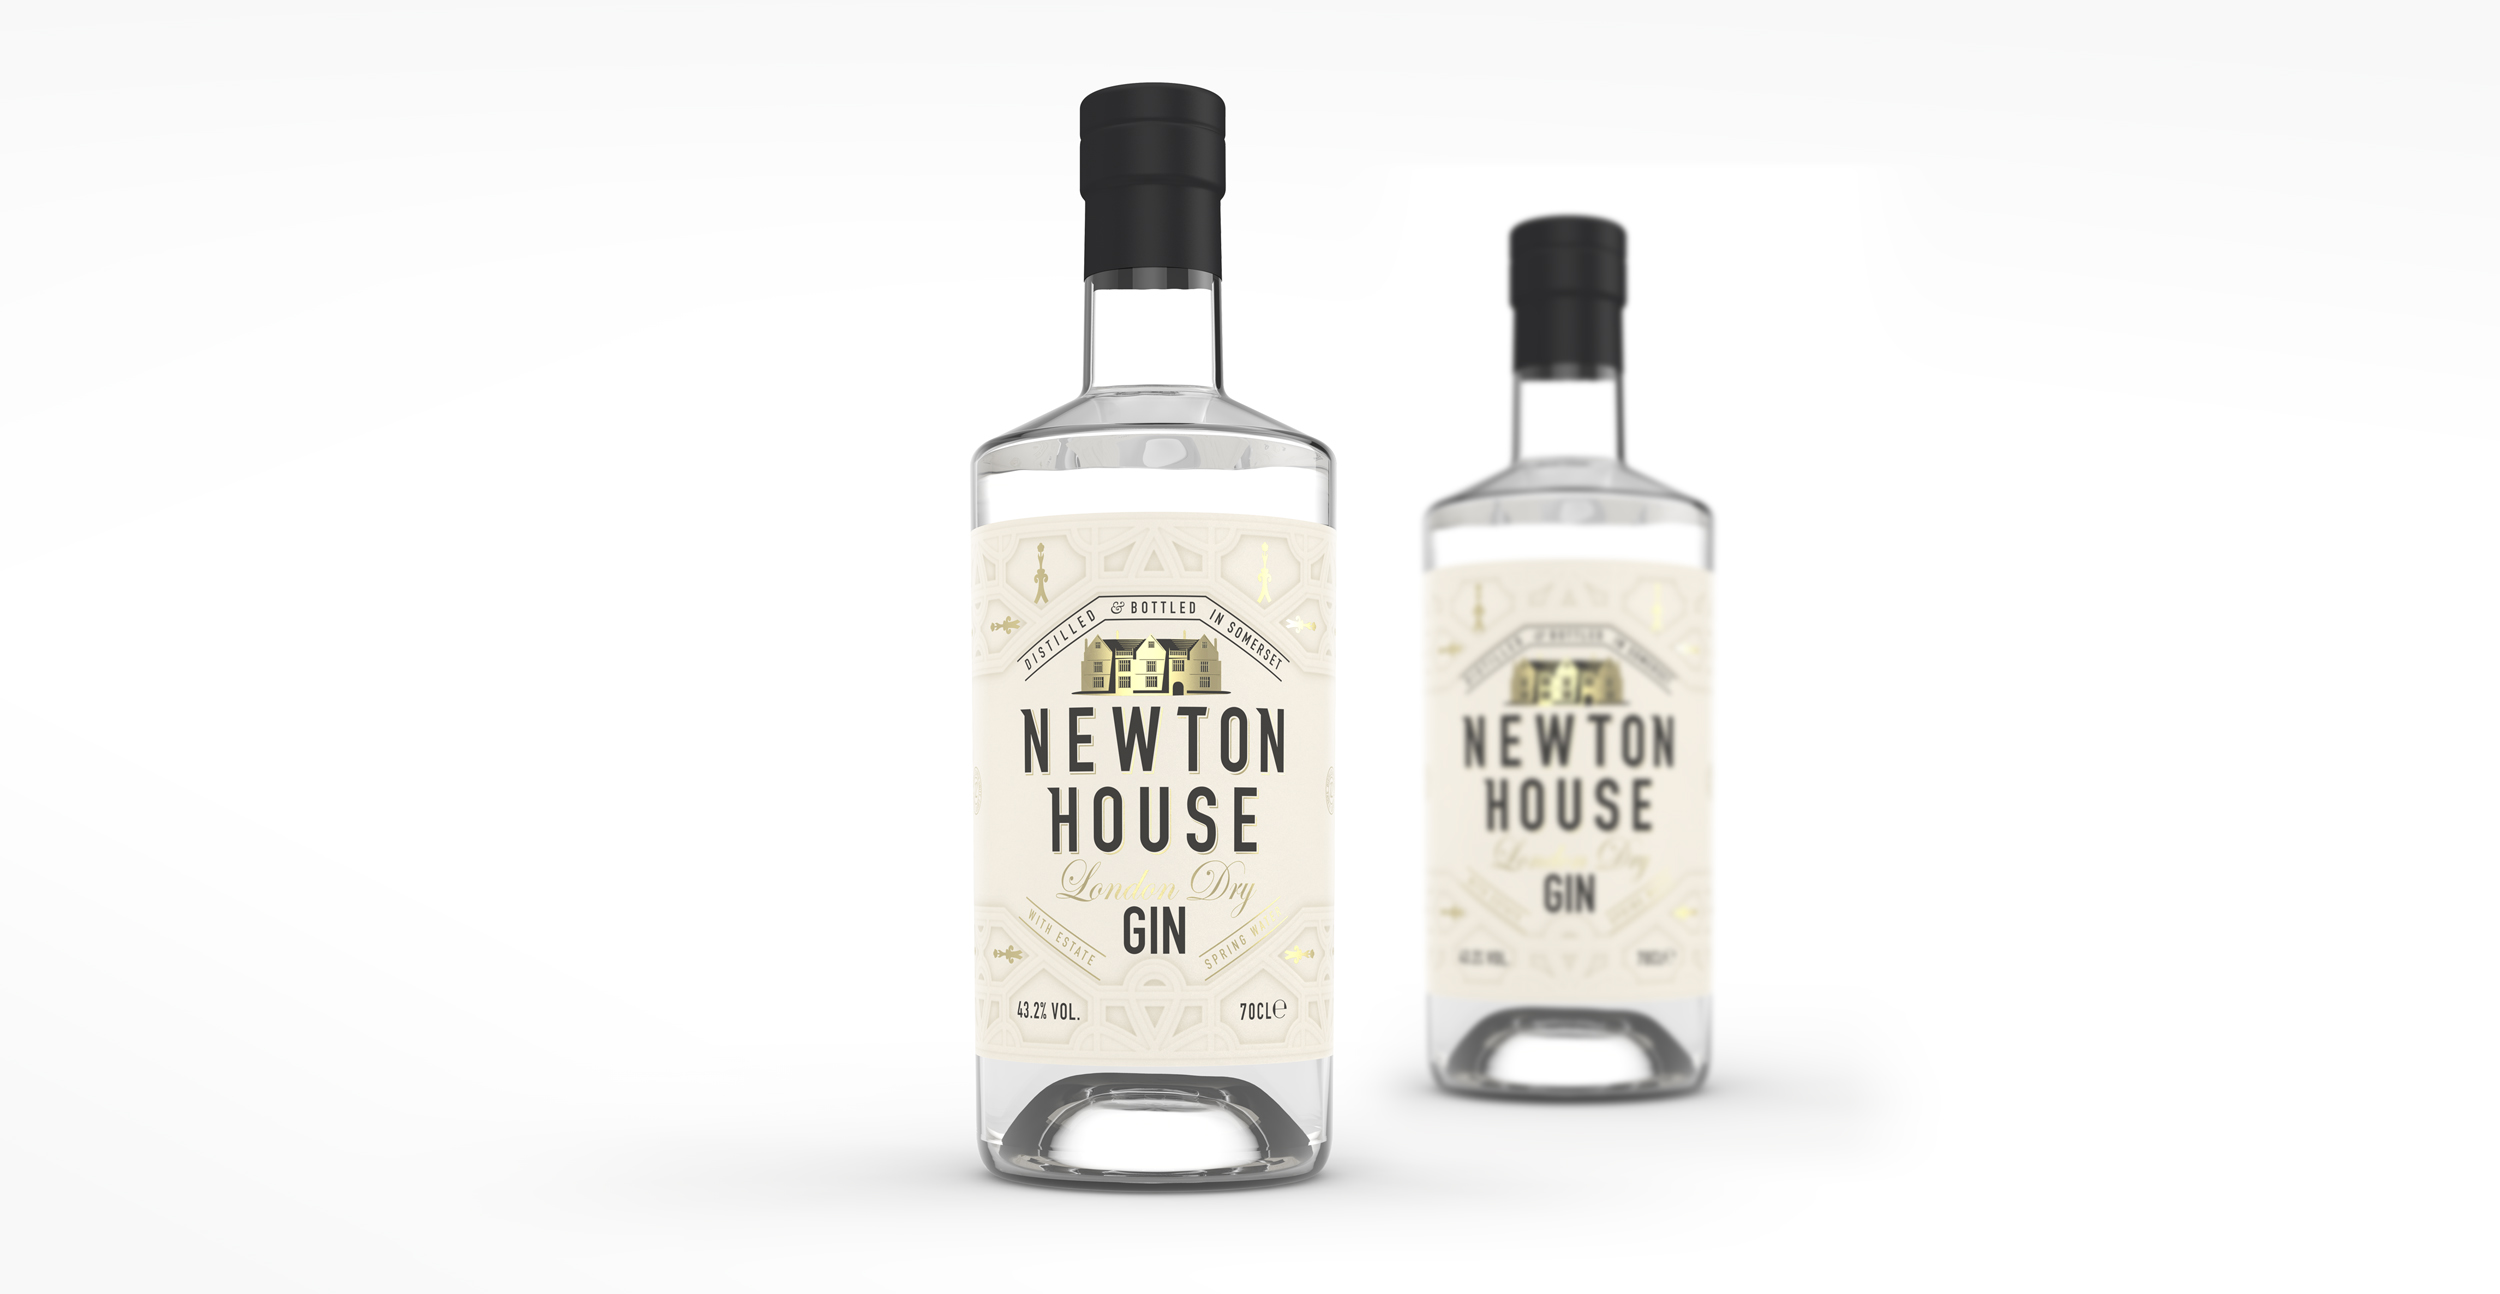 Newtong Gin Branding and Packaging Design Bottle render